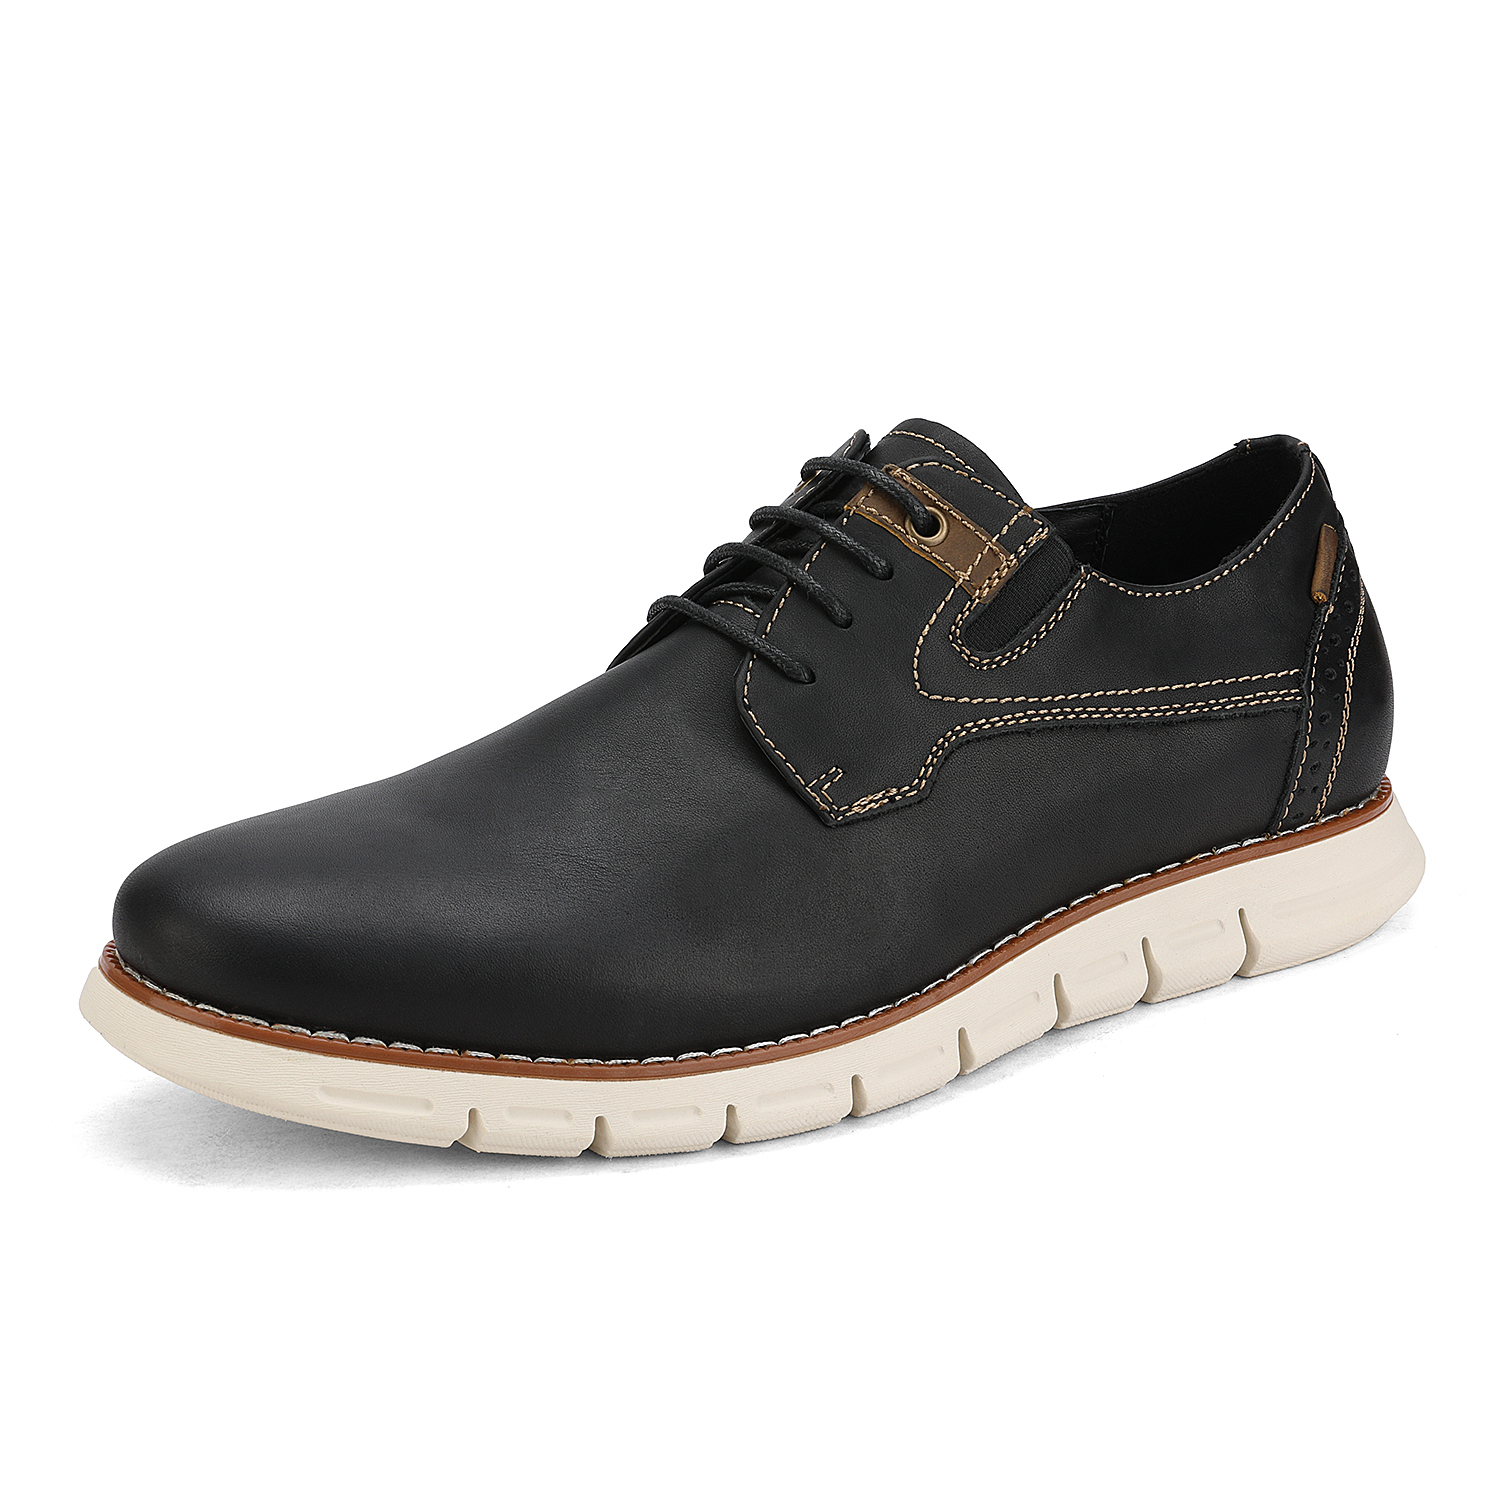 Men-s-Genuine-Leather-Casual-Formal-Sneakers-Lace-up-Business-Oxford-Dress-Shoes thumbnail 37